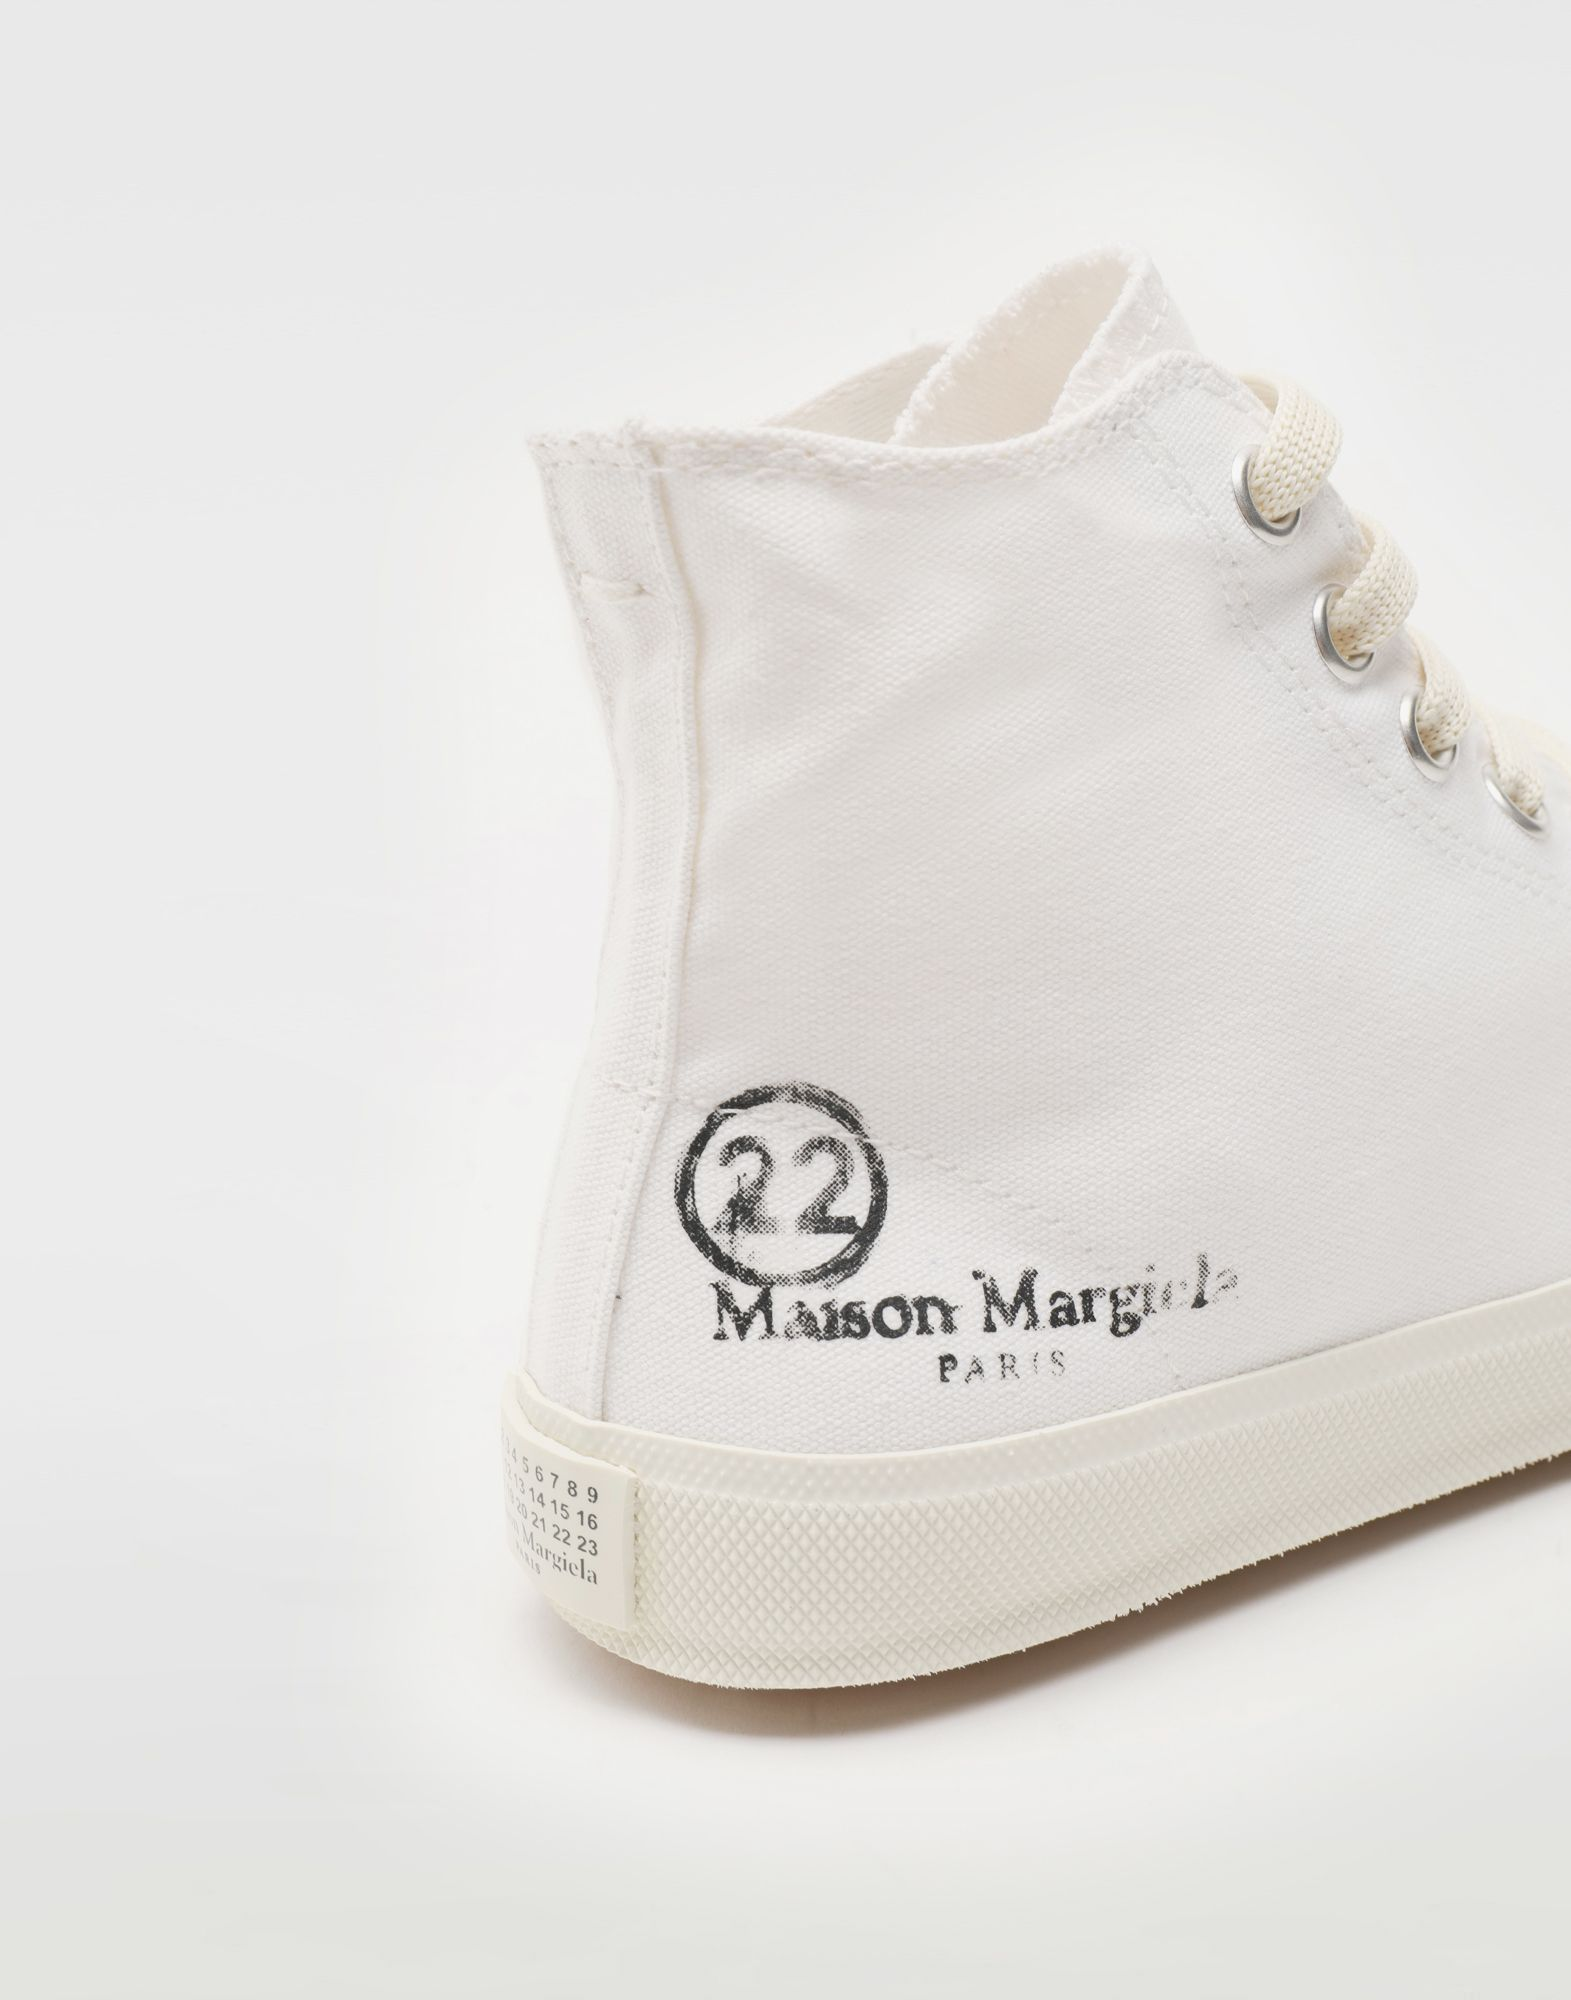 MAISON MARGIELA Tabi high top canvas sneakers Sneakers Tabi Woman a